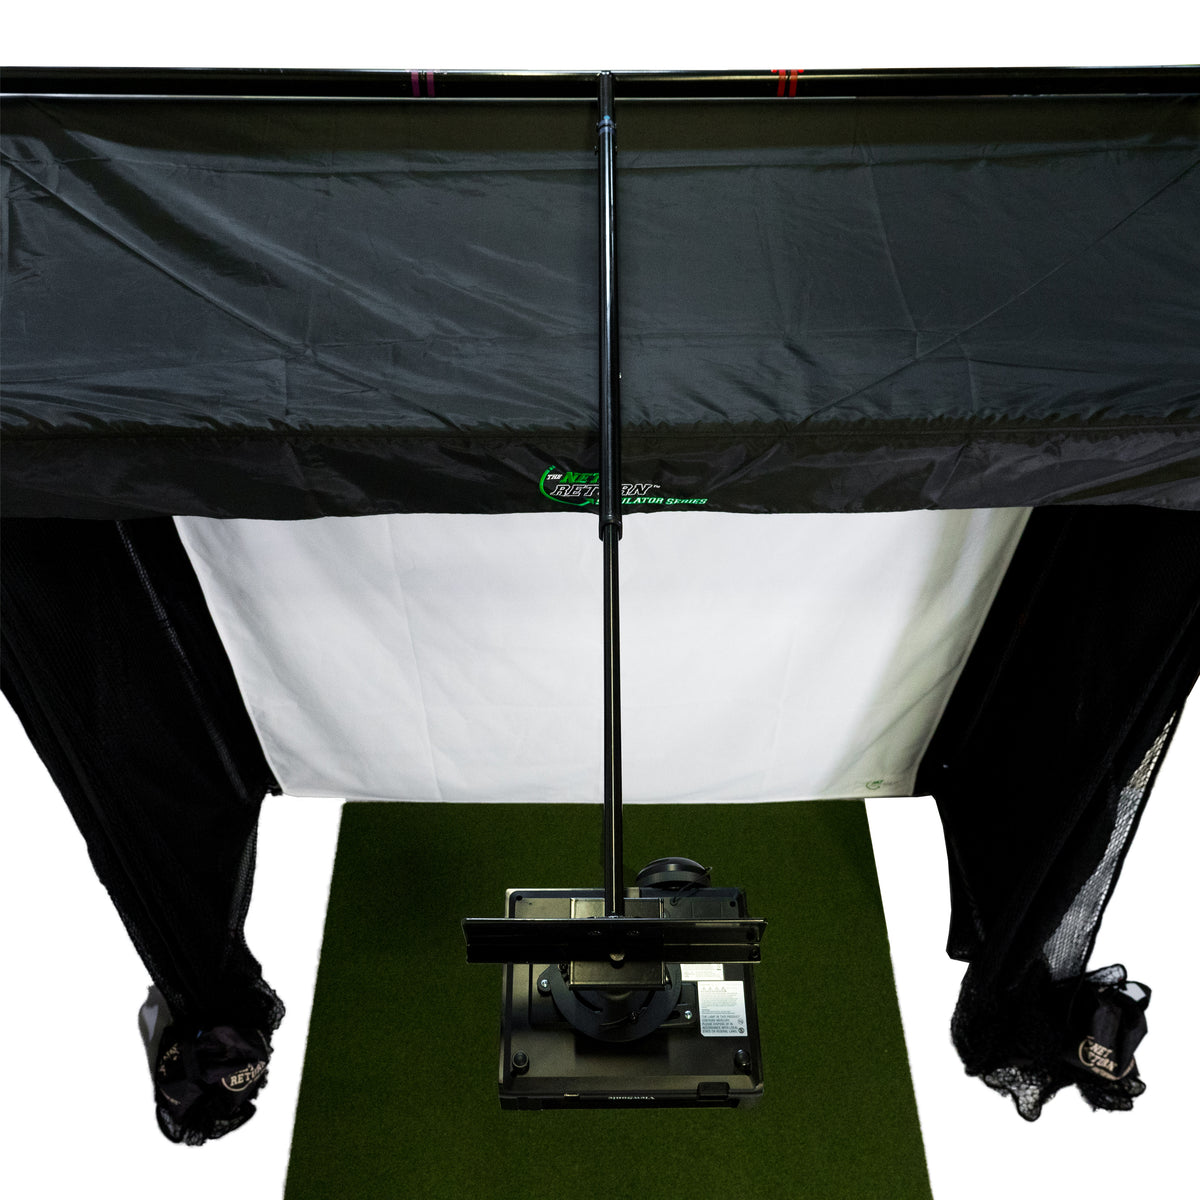 Simulator Series 8 Golf Play and Practice Net